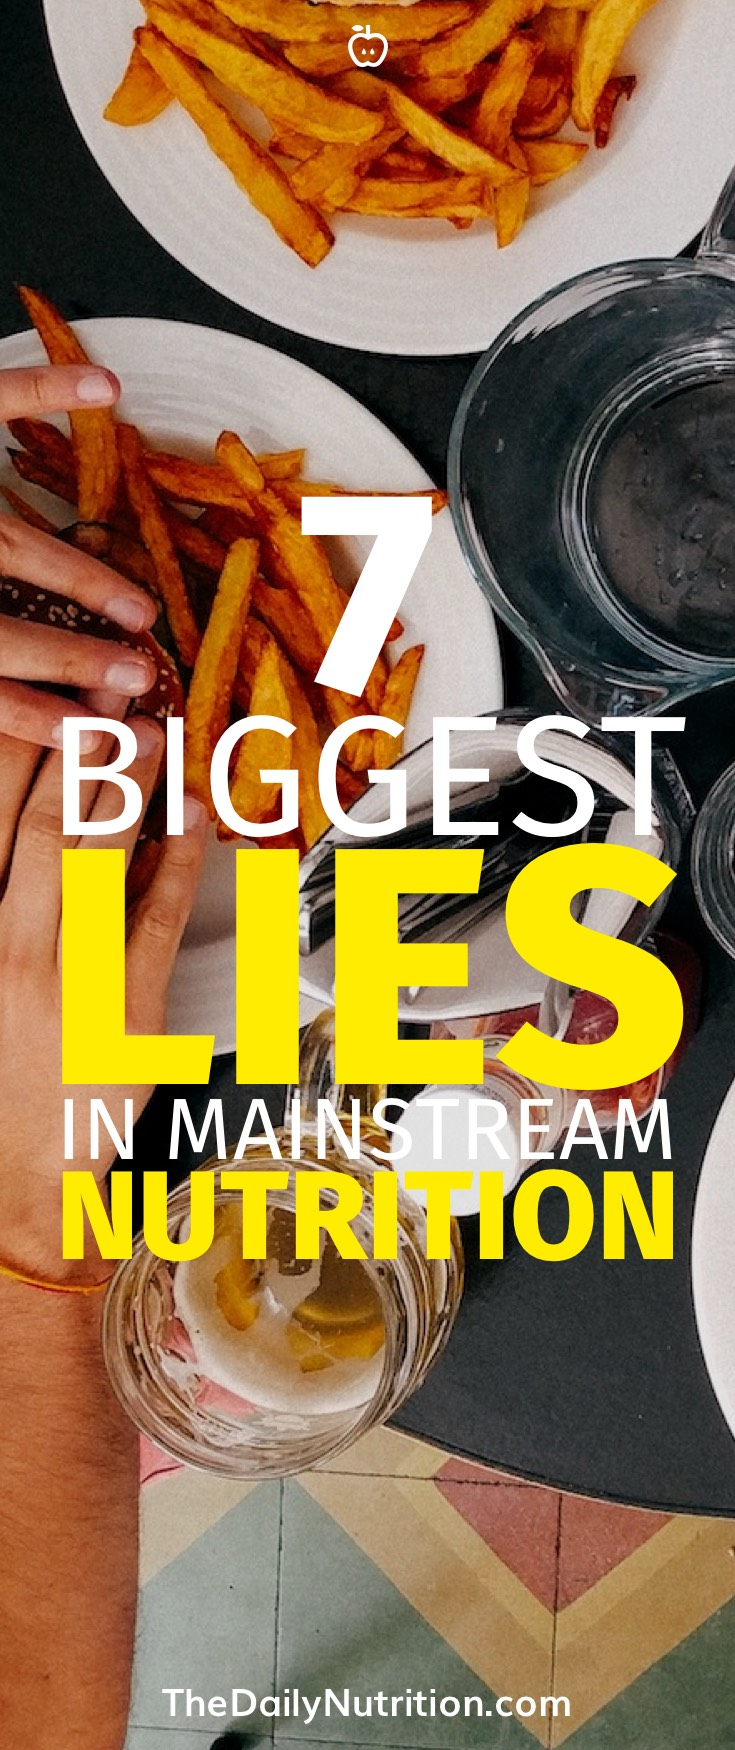 Understanding nutrition is important if you want to feel healthy. However, it's hard to separate truth from fiction. Here are 7 nutrition myths you can stop believing.